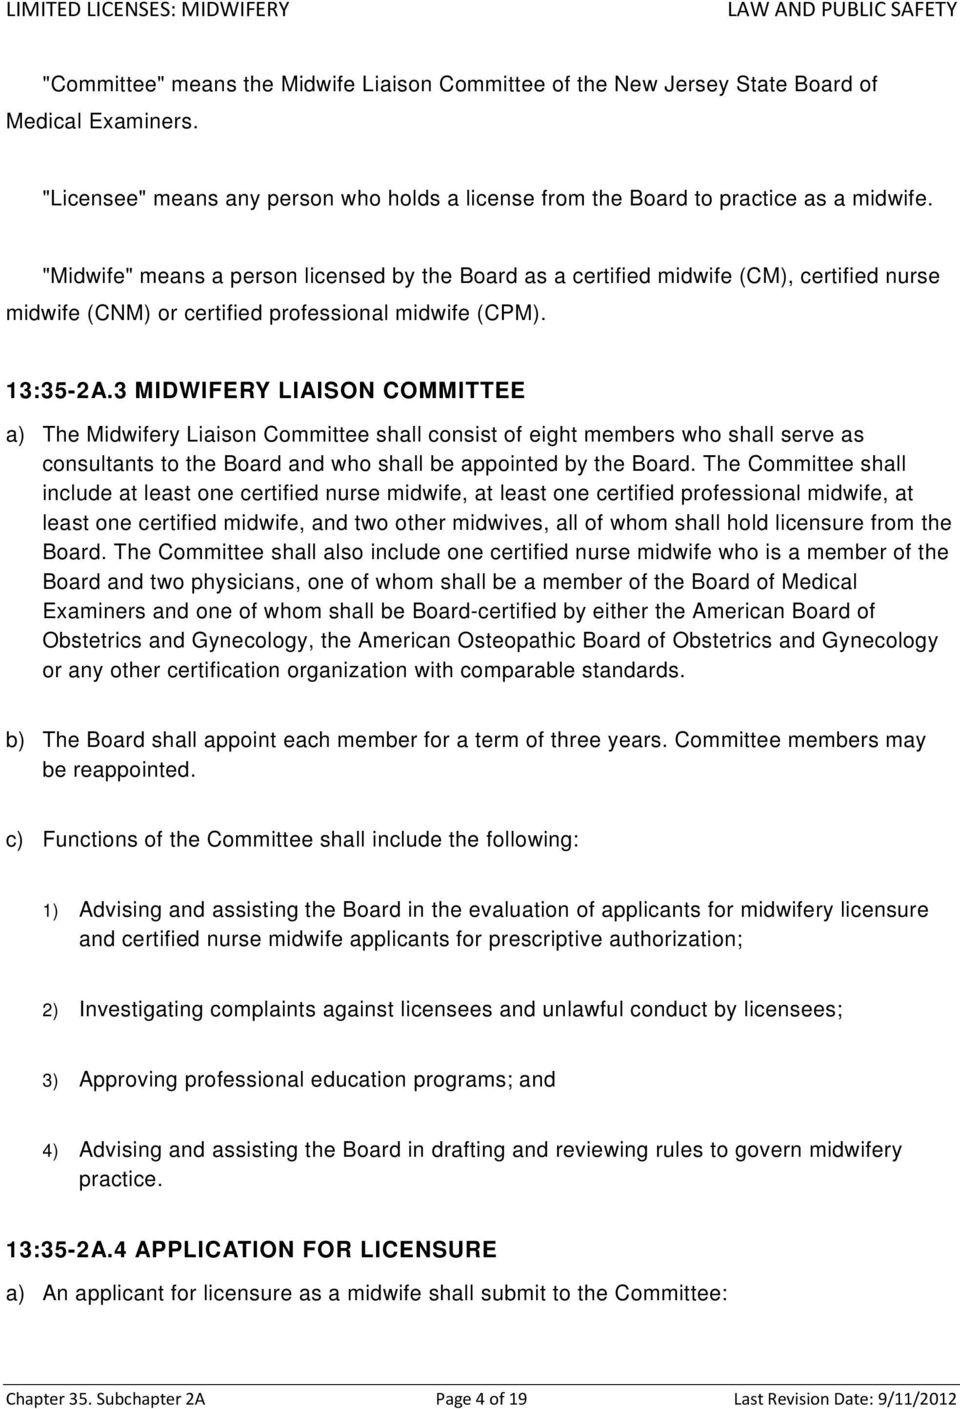 3 MIDWIFERY LIAISON COMMITTEE a) The Midwifery Liaison Committee shall consist of eight members who shall serve as consultants to the Board and who shall be appointed by the Board.